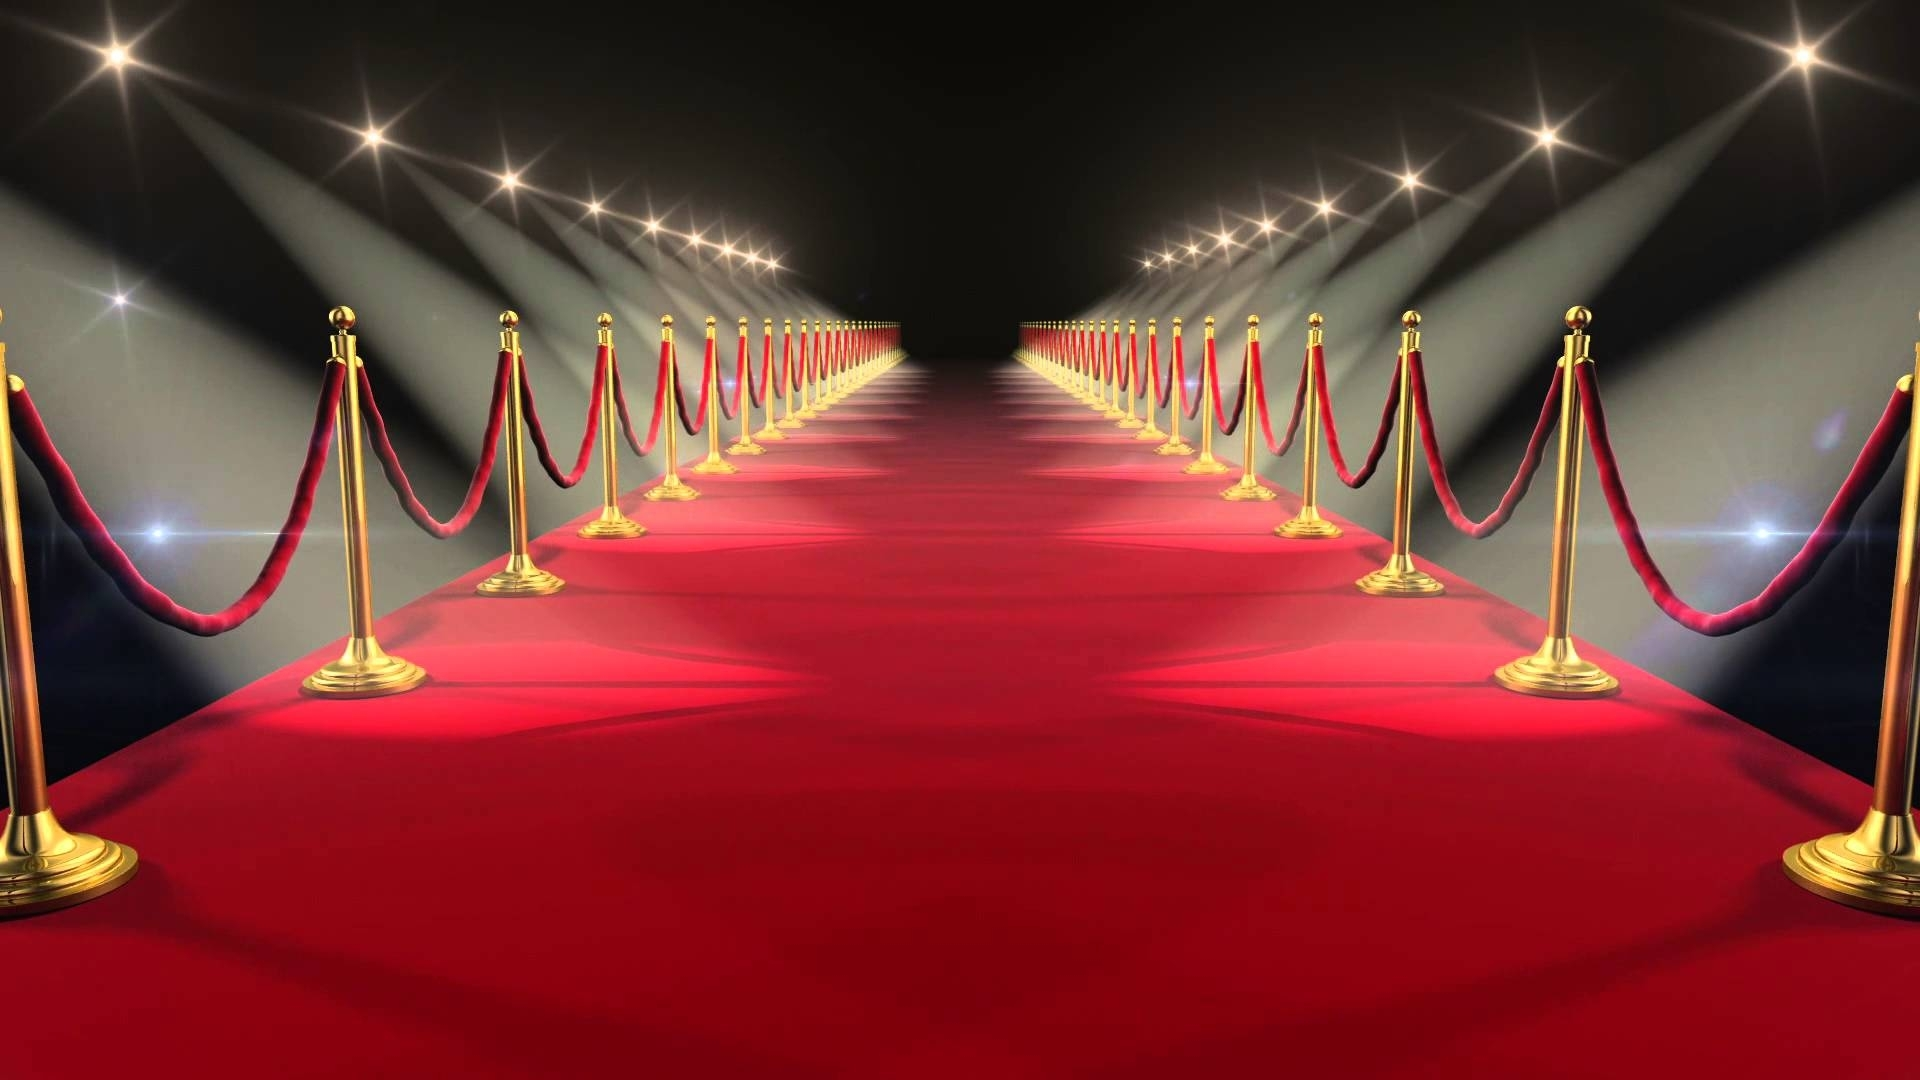 red carpet background - youtube